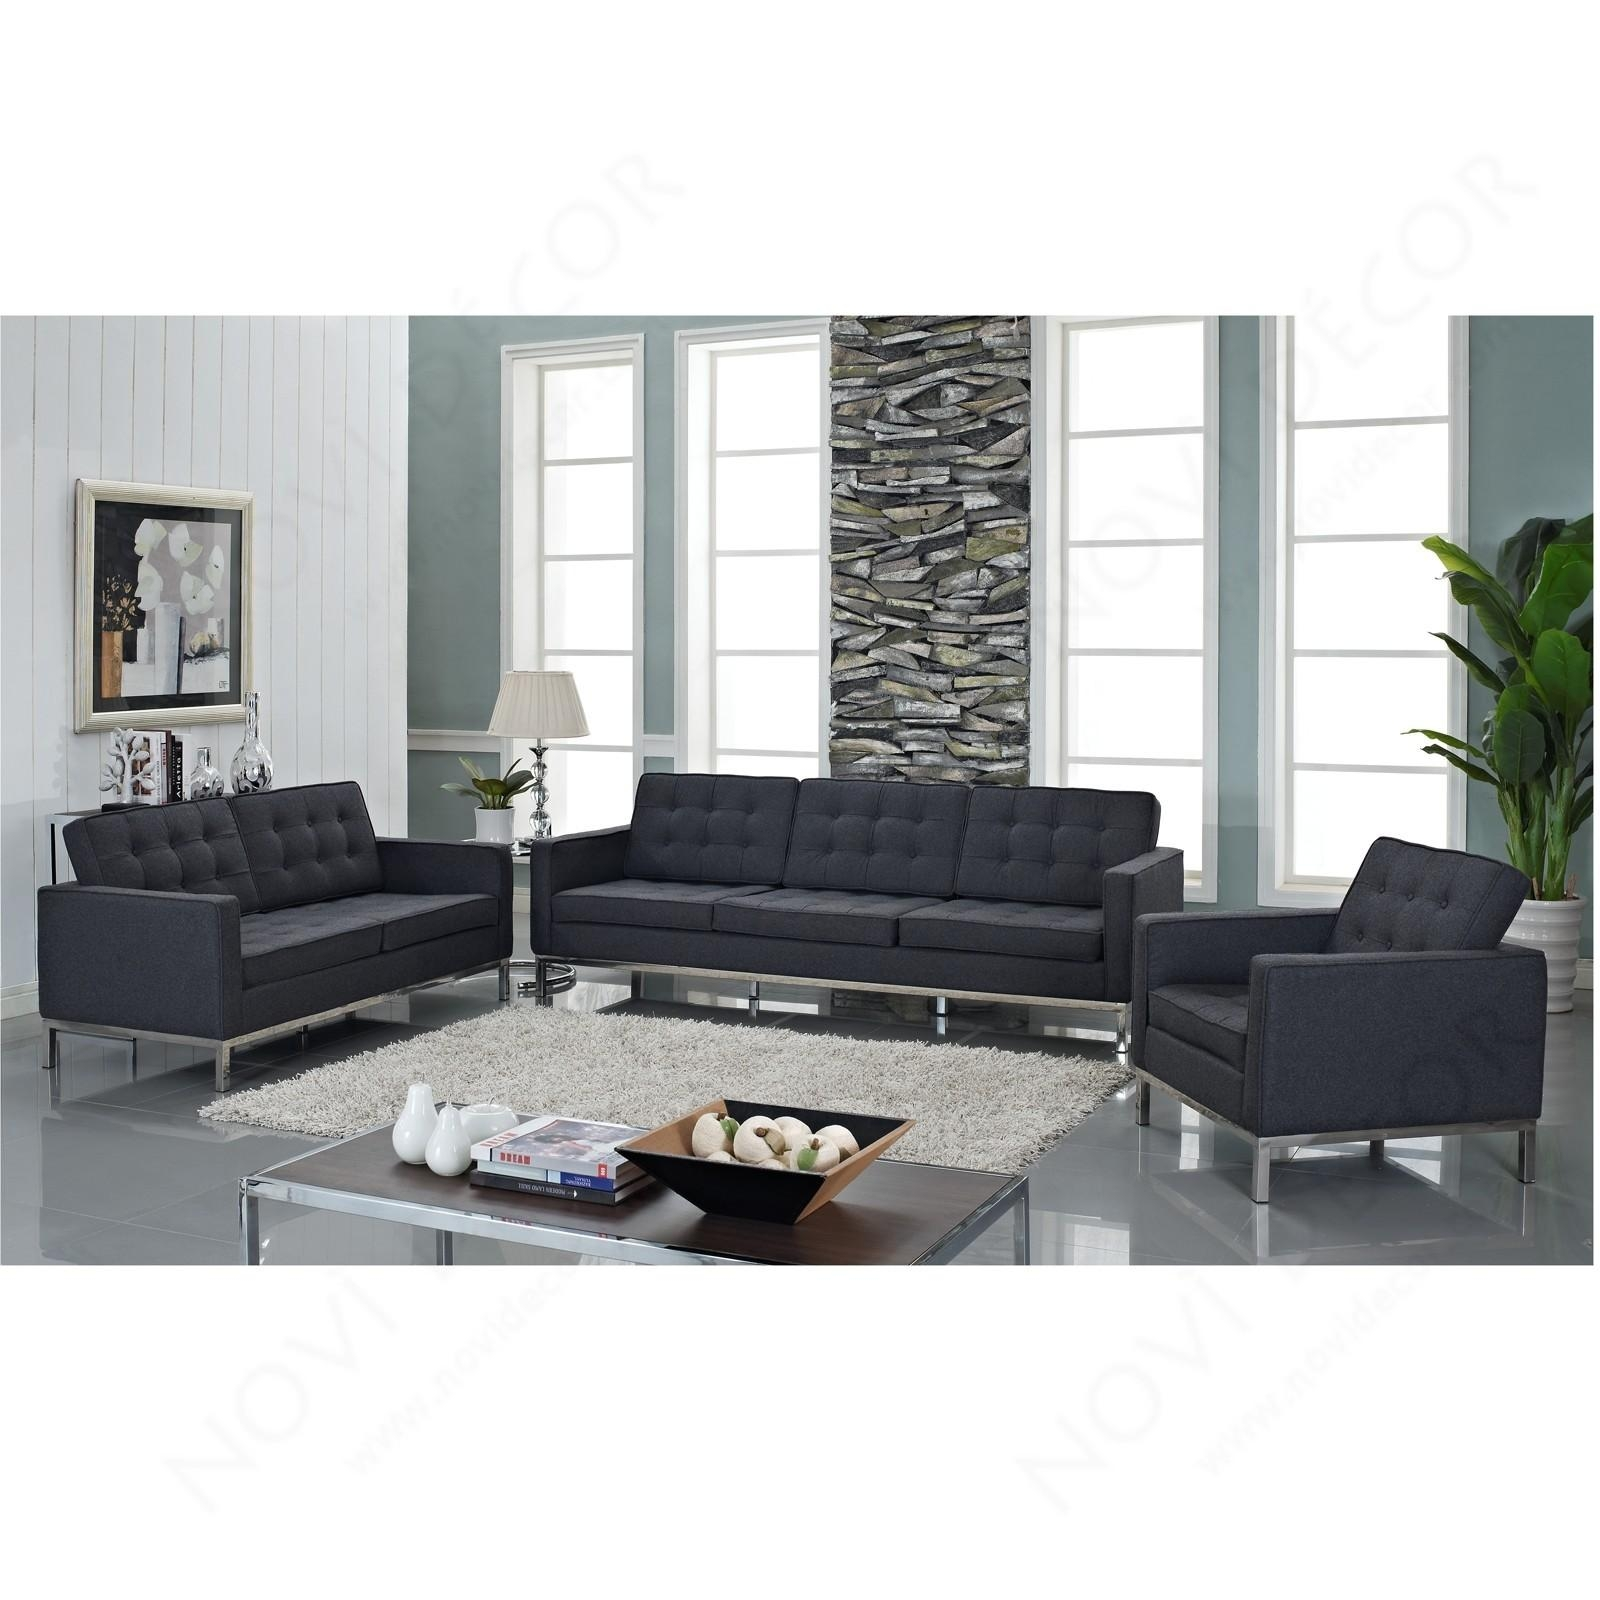 Florence Style Loveseat In Wool (Multiple Colors) | Designer With Regard To Florence Sofas And Loveseats (View 3 of 20)